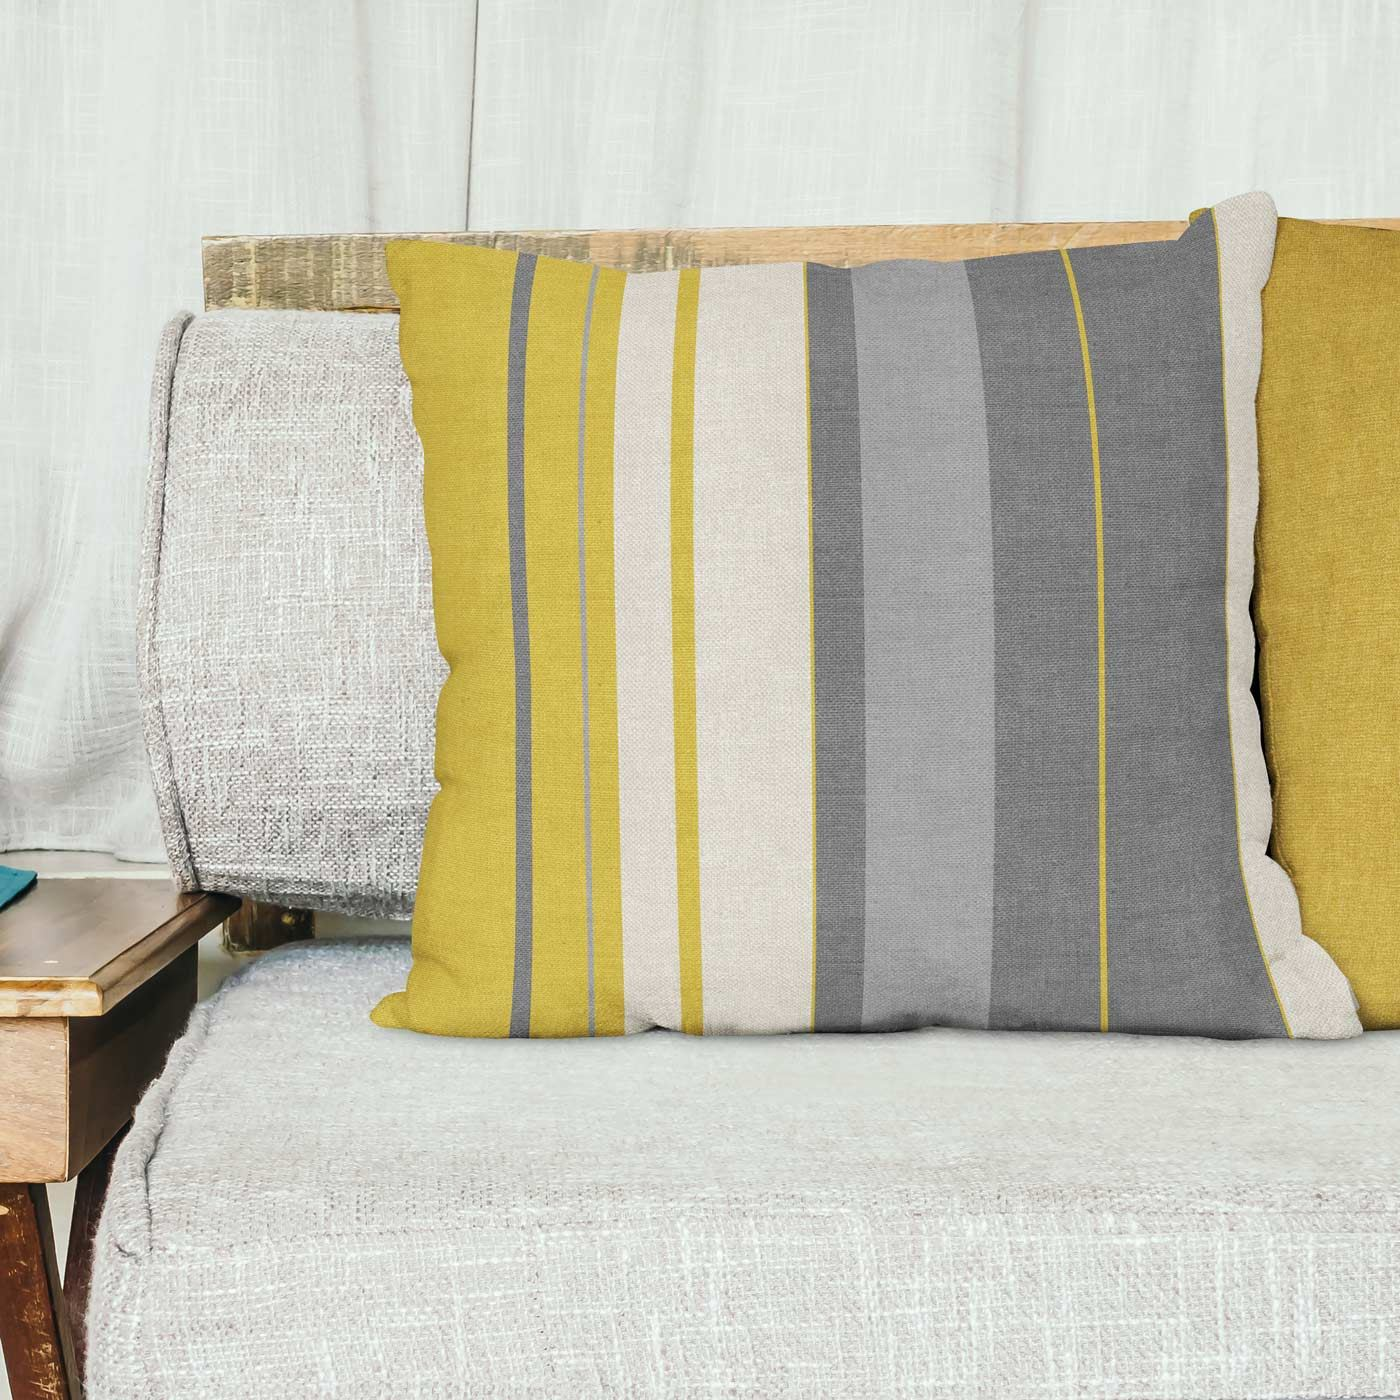 Grey-Ochre-Mustard-Cushion-Cover-Collection-17-034-18-034-Covers-Filled-Cushions thumbnail 103